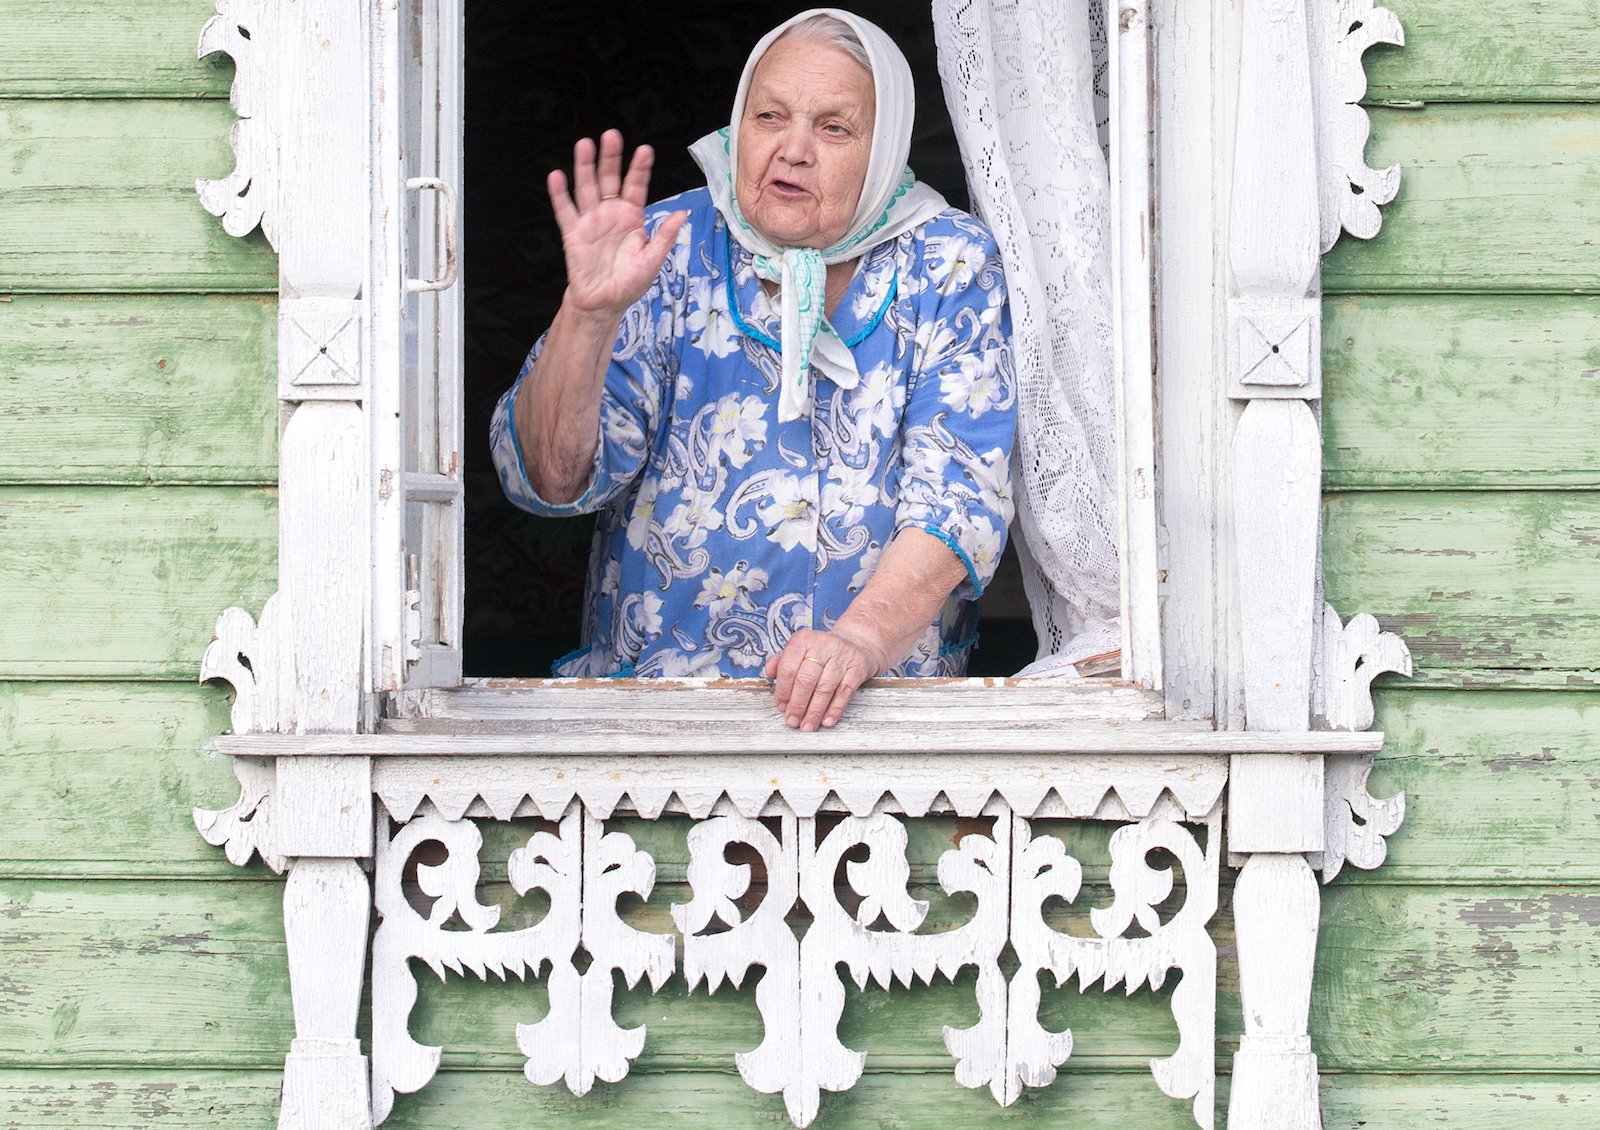 Celebrating the quaint charm of Nalichniki, the ornate wooden window frames of Russia